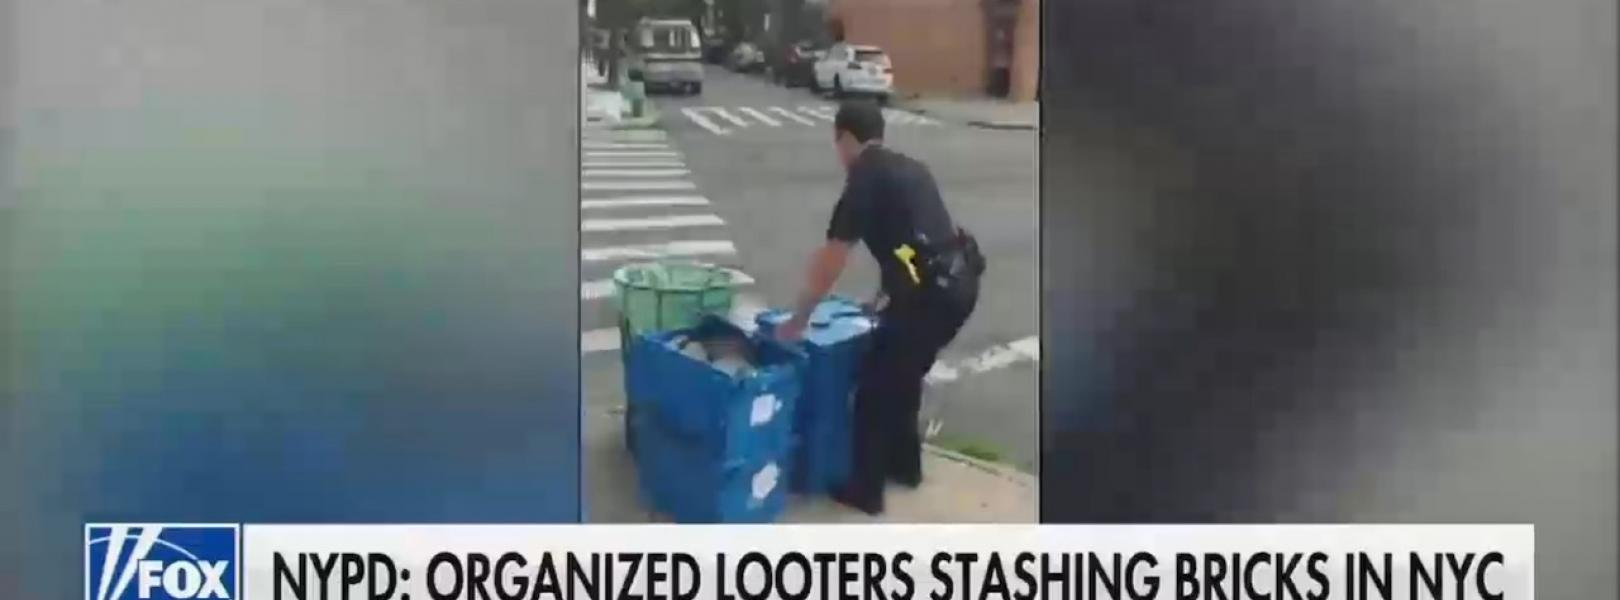 fox-friends-nypd-says-looters-stashing-bricks-06-04-2020.jpg